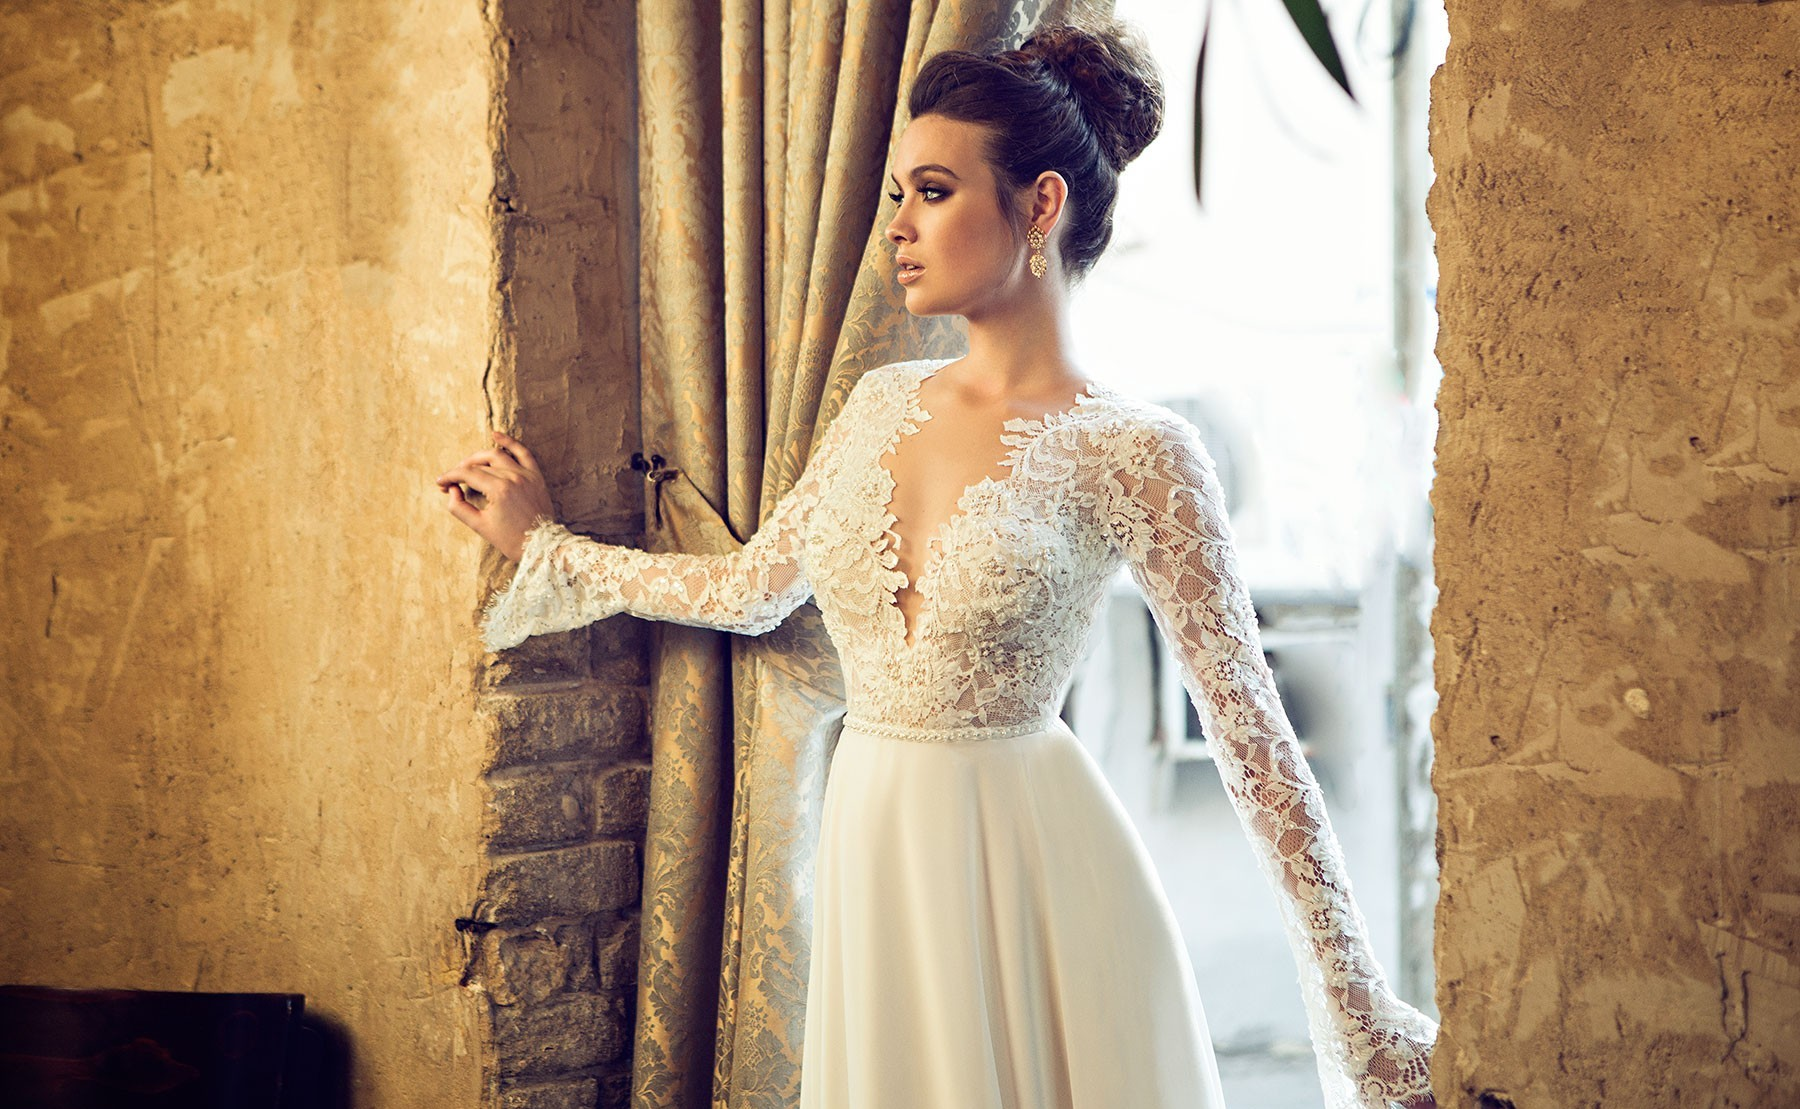 A wedding dress with long sleeves